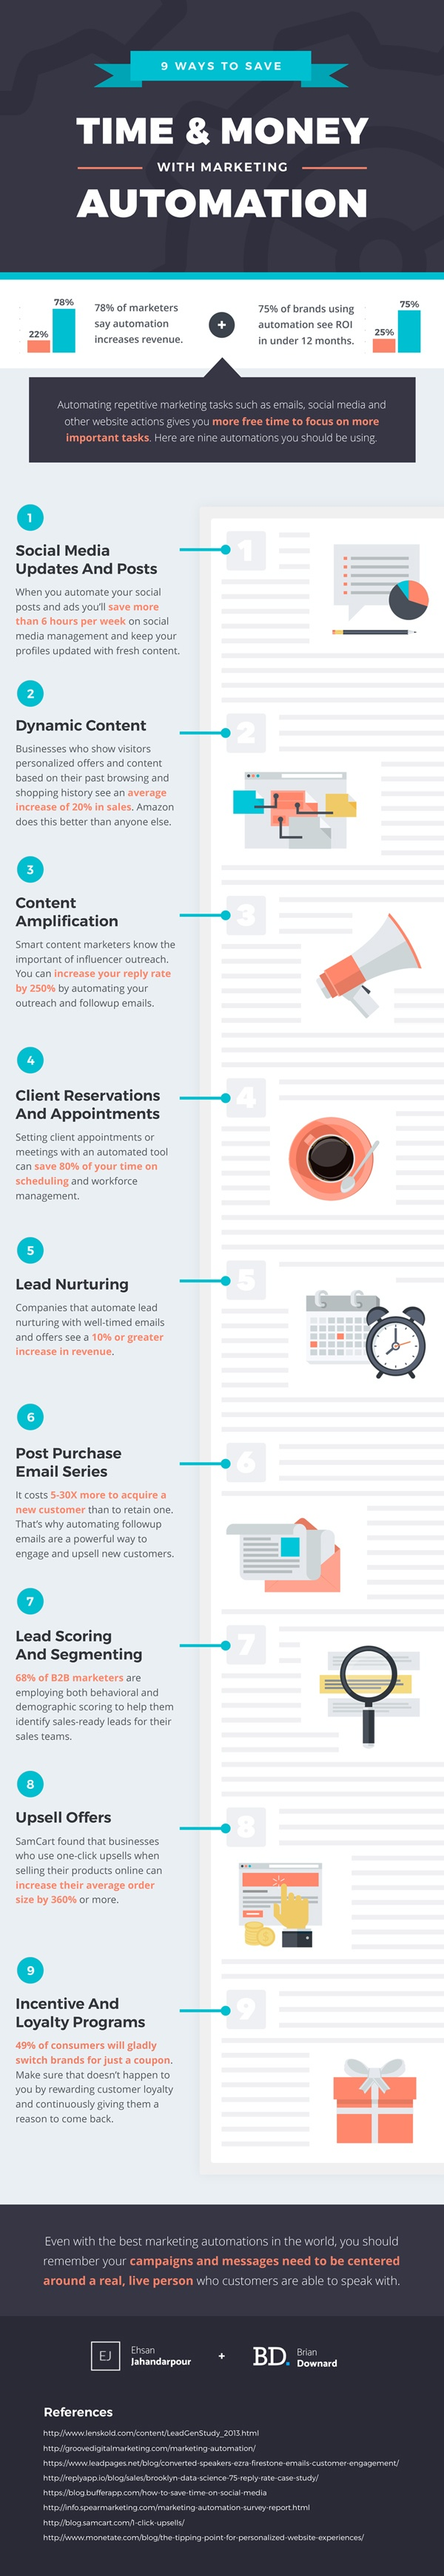 Infographic showing 9 ways to save time and money with marketing automation.